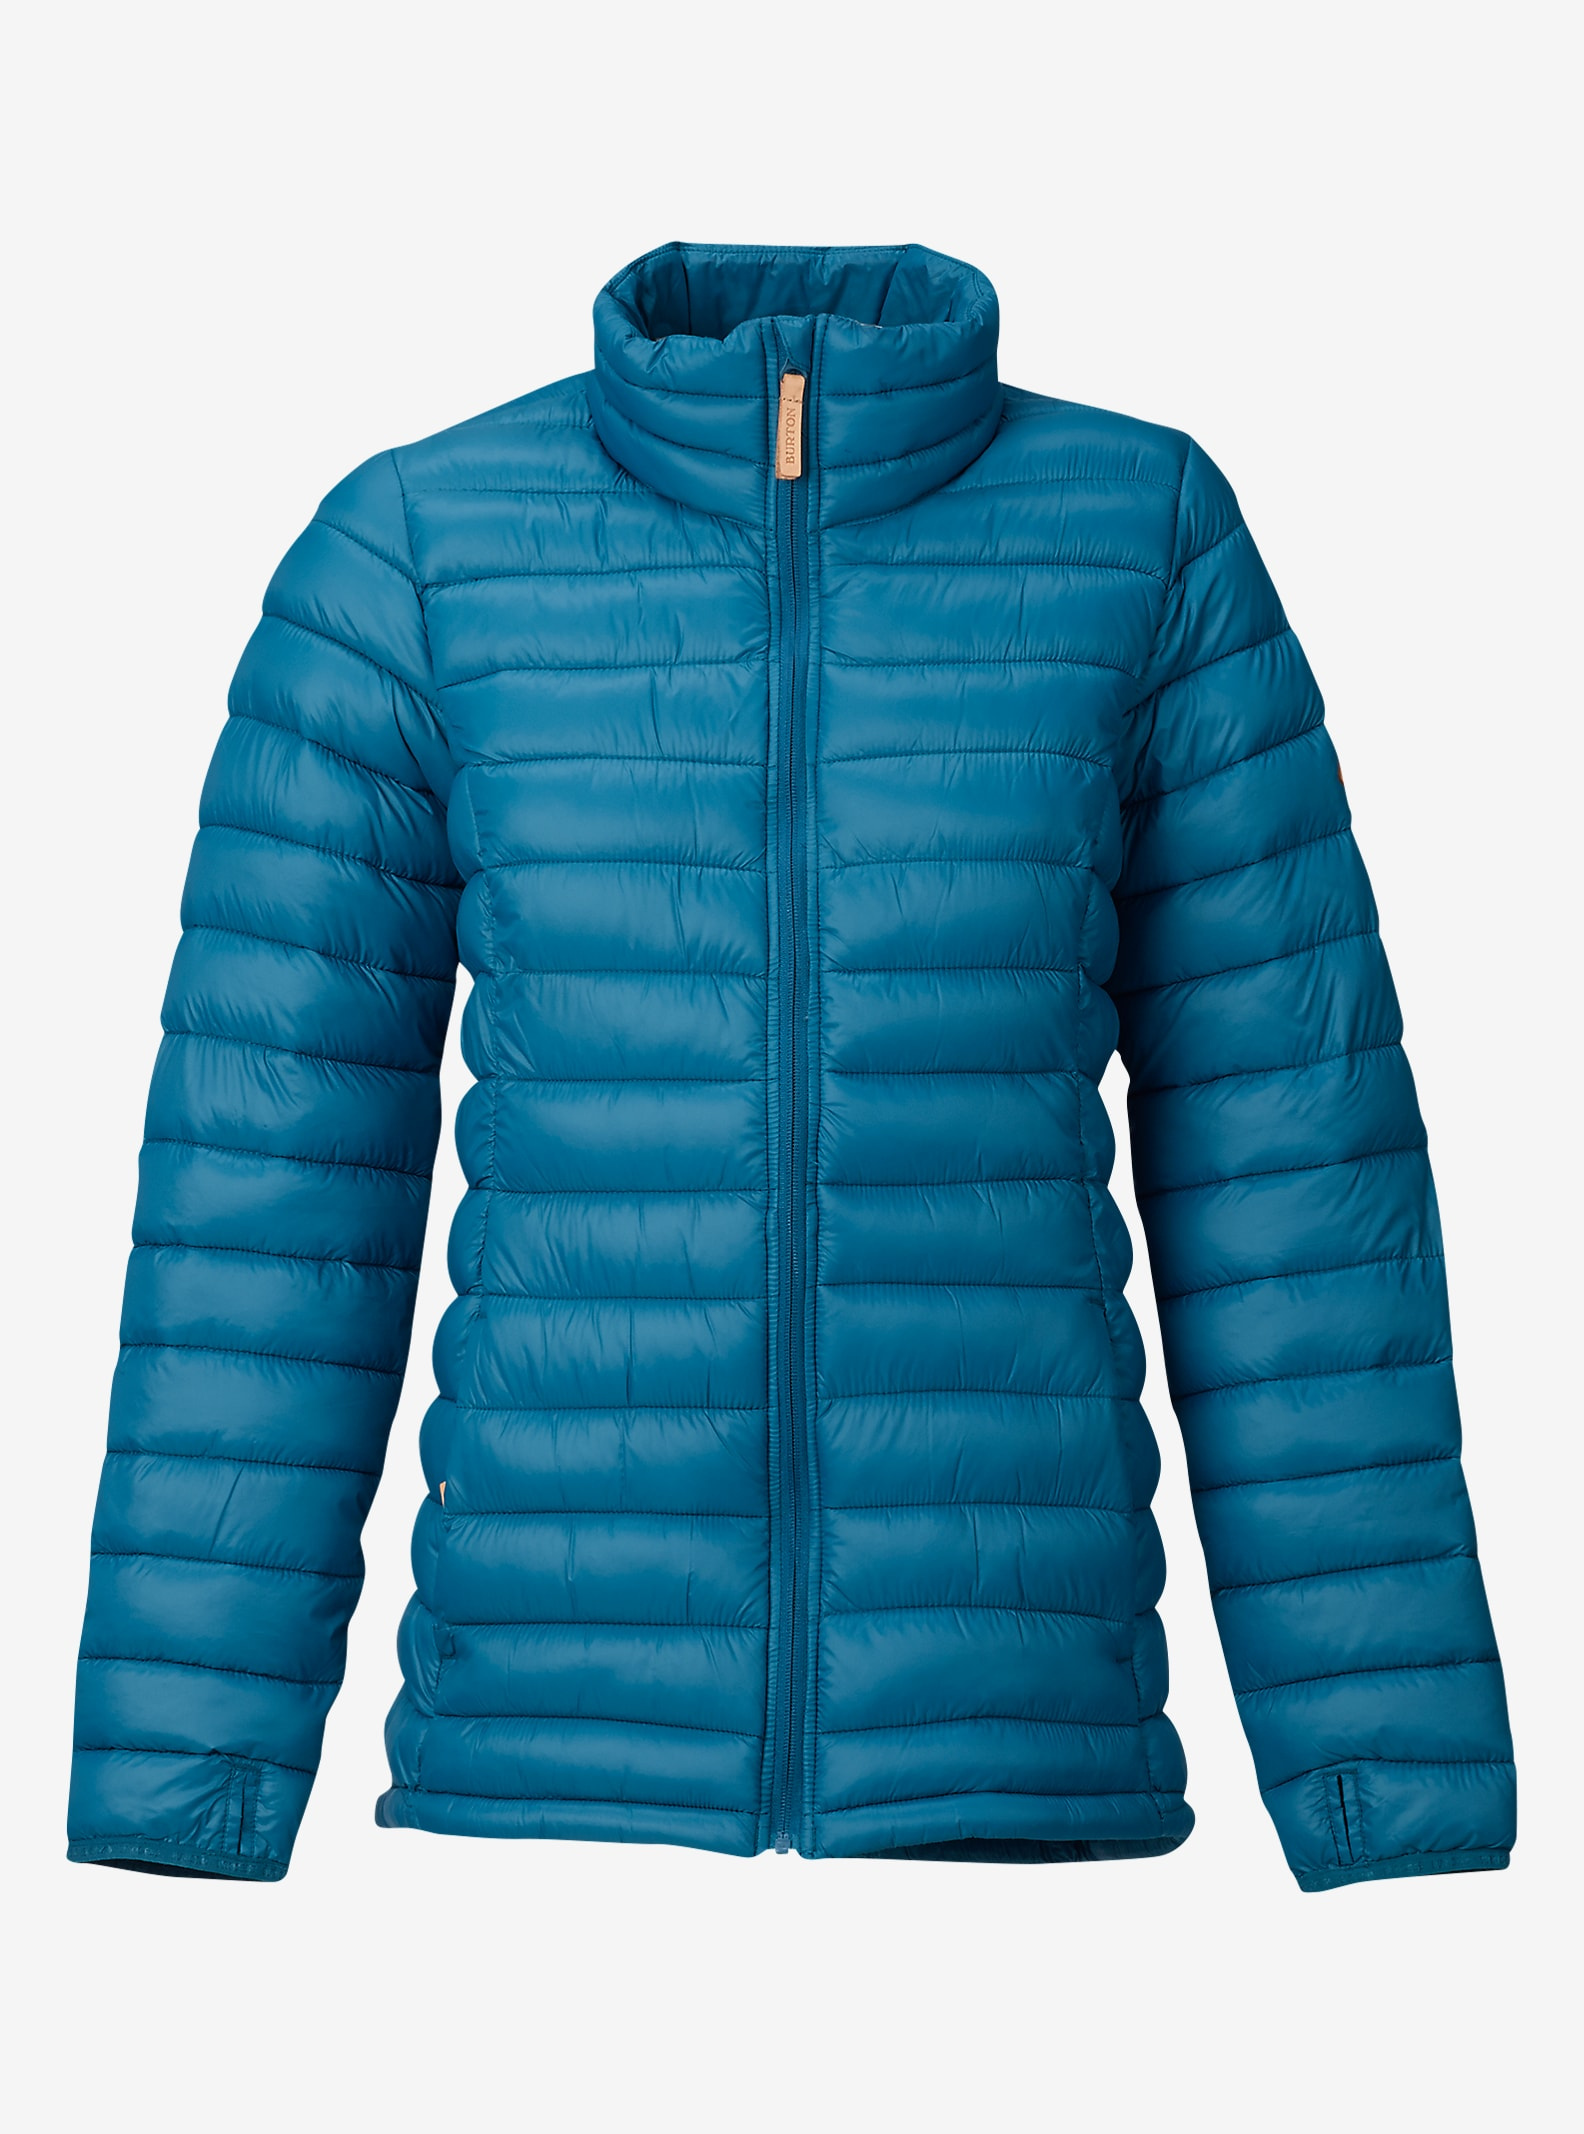 Burton Women's Evergreen Synthetic Insulator shown in Jaded